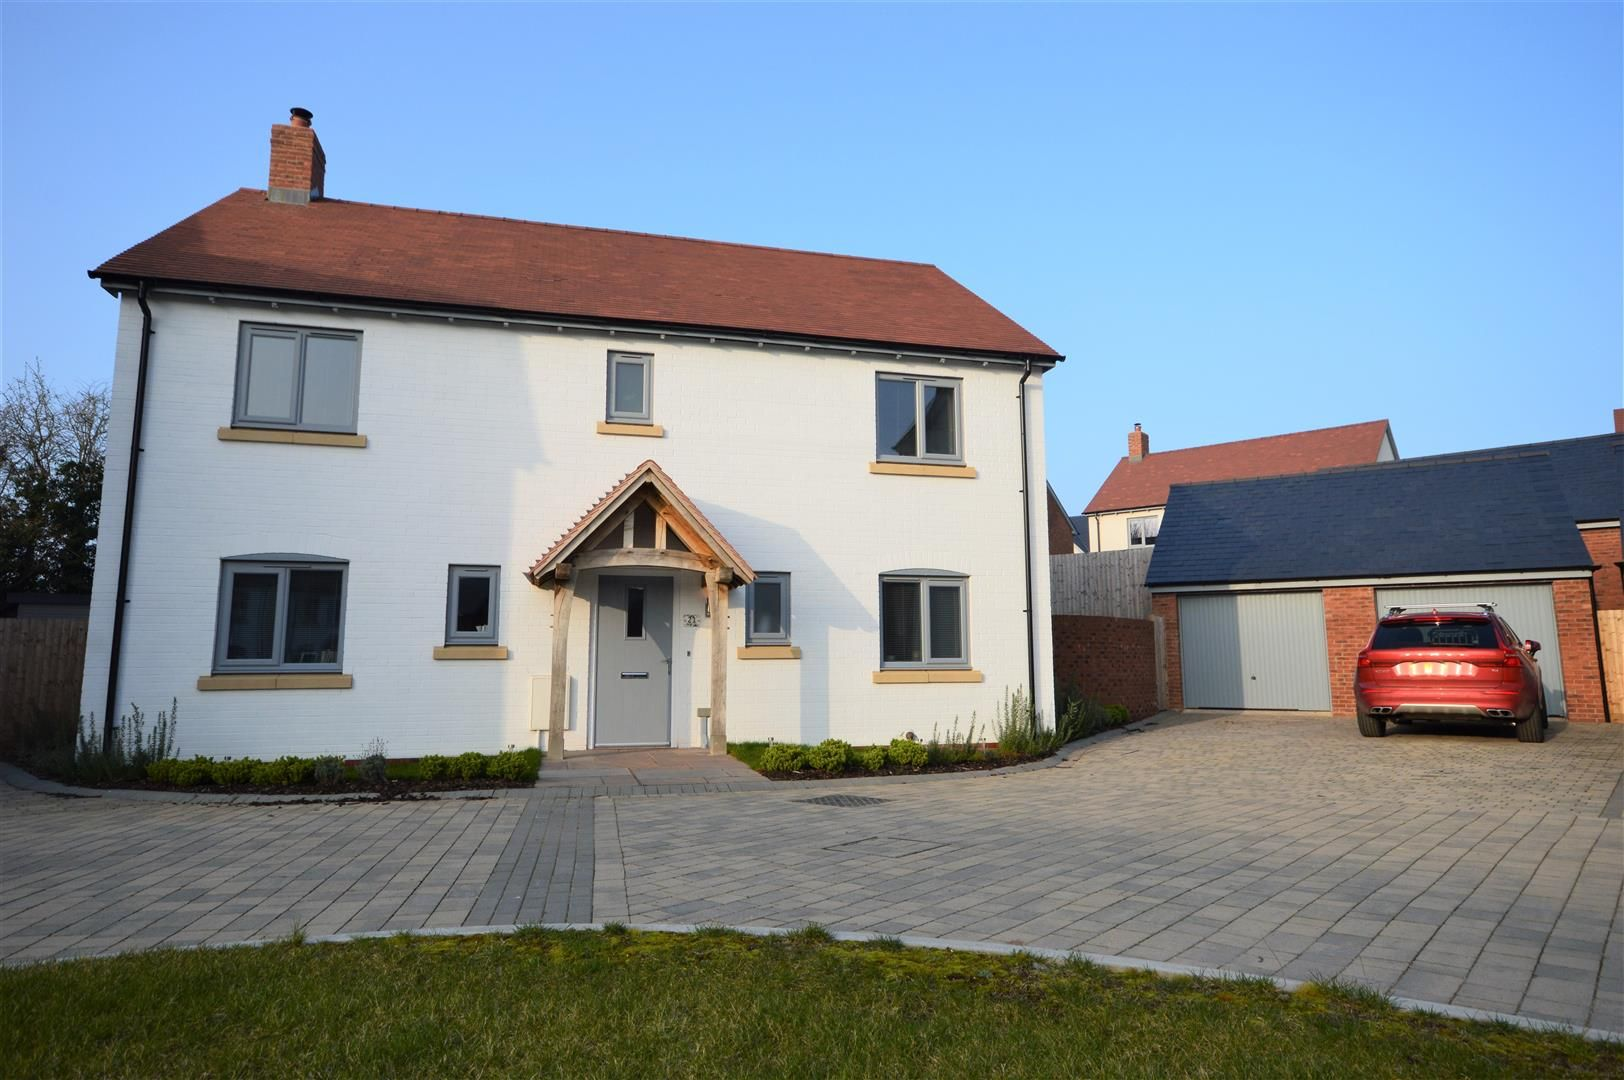 4 bed detached for sale in Weobley 1